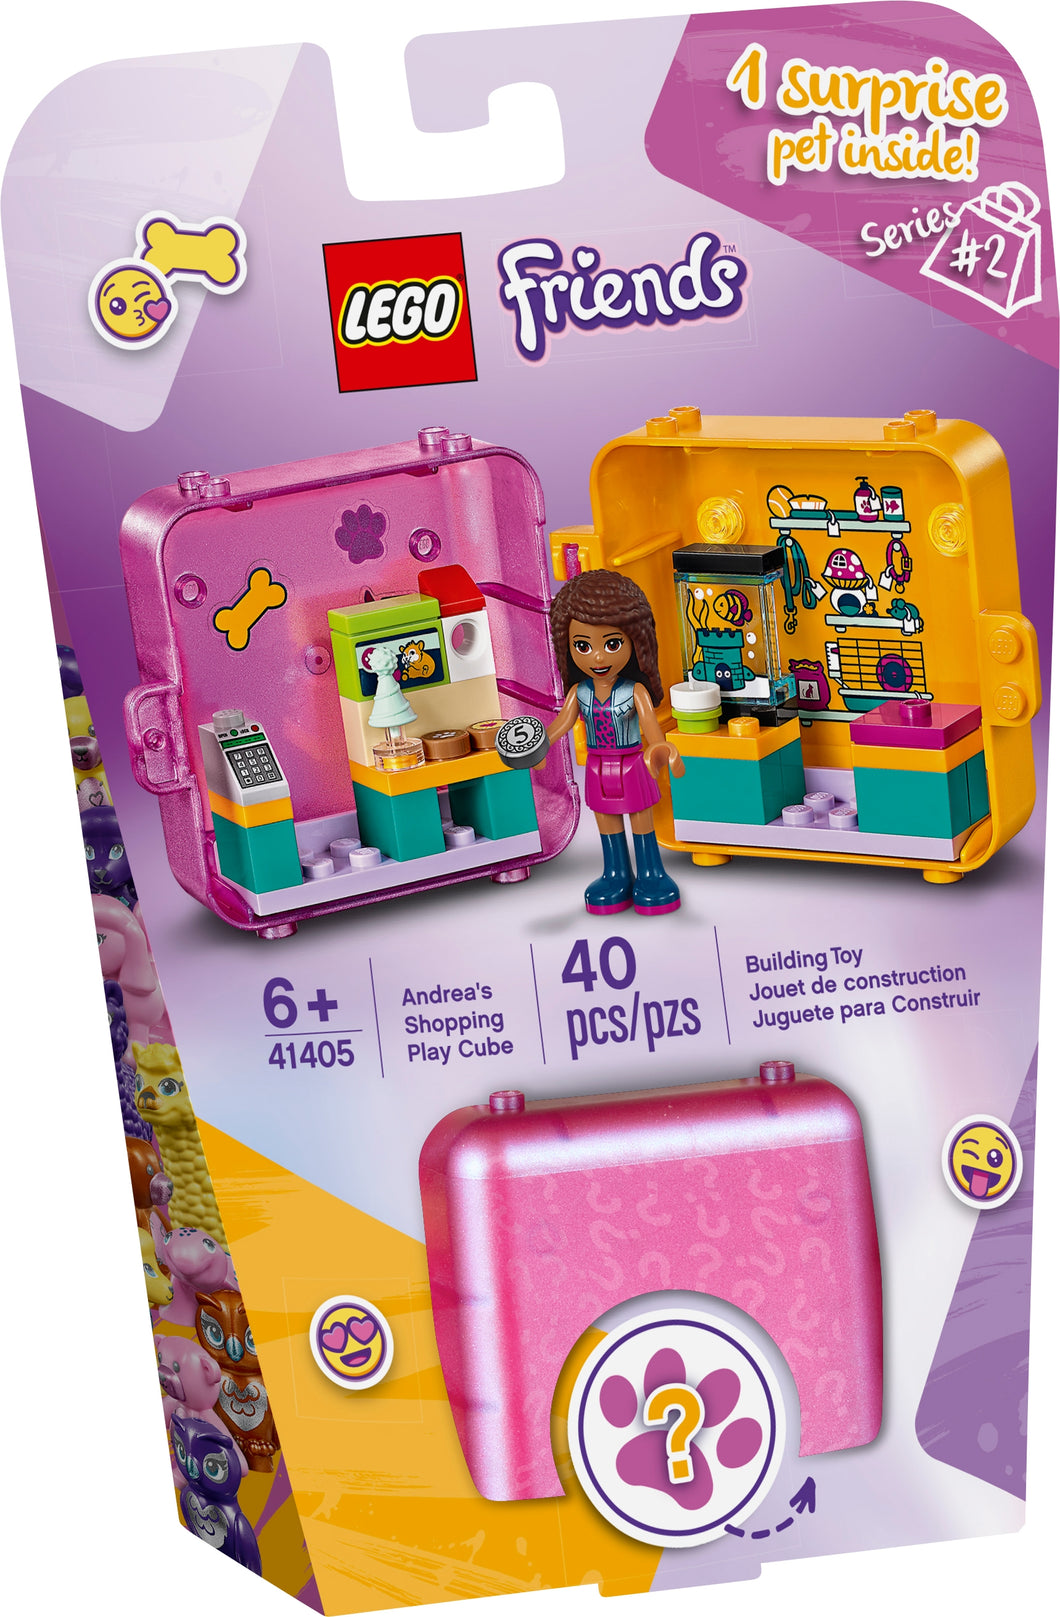 LEGO Friends 41405 Andreas Shopping Play Cube